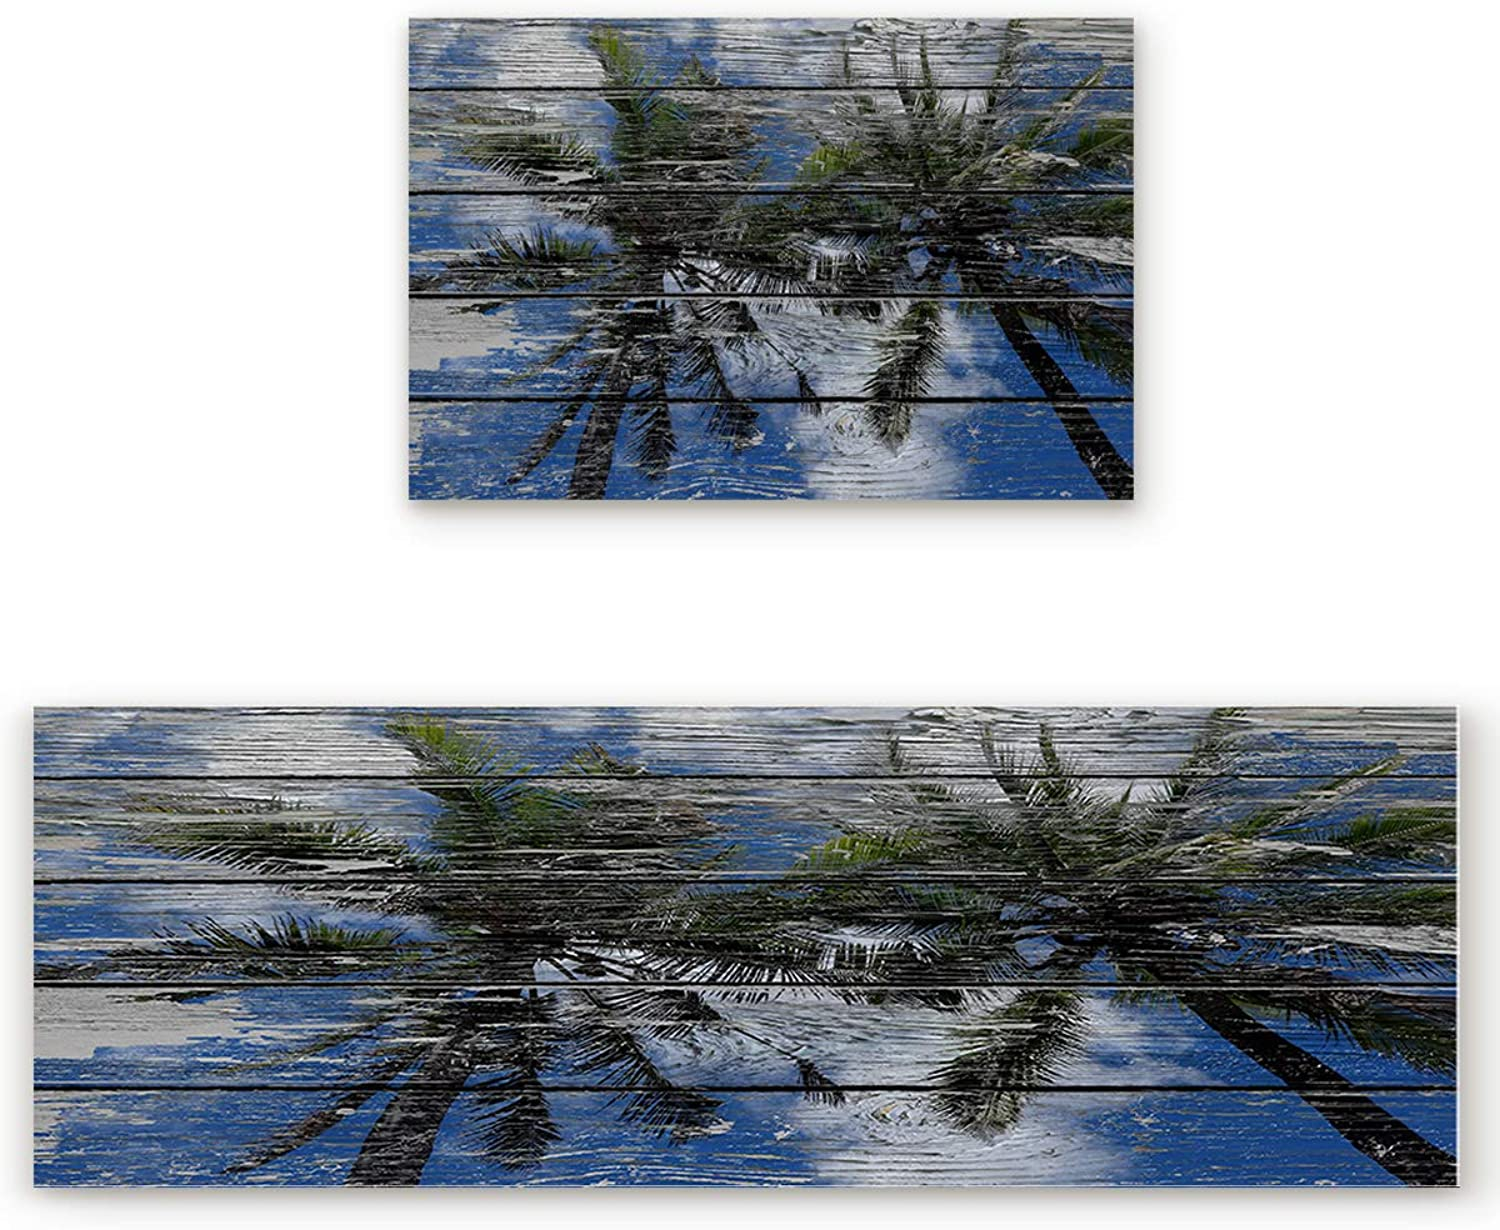 SODIKA 2 Pieces Kitchen Rug Set,Non-Skid Slip Washable Doormat Floor Runner Bathroom Area Rug Carpet,Tropical Palm Tree Painted on Wooden Board (19.7x31.5in+19.7x63 inches)